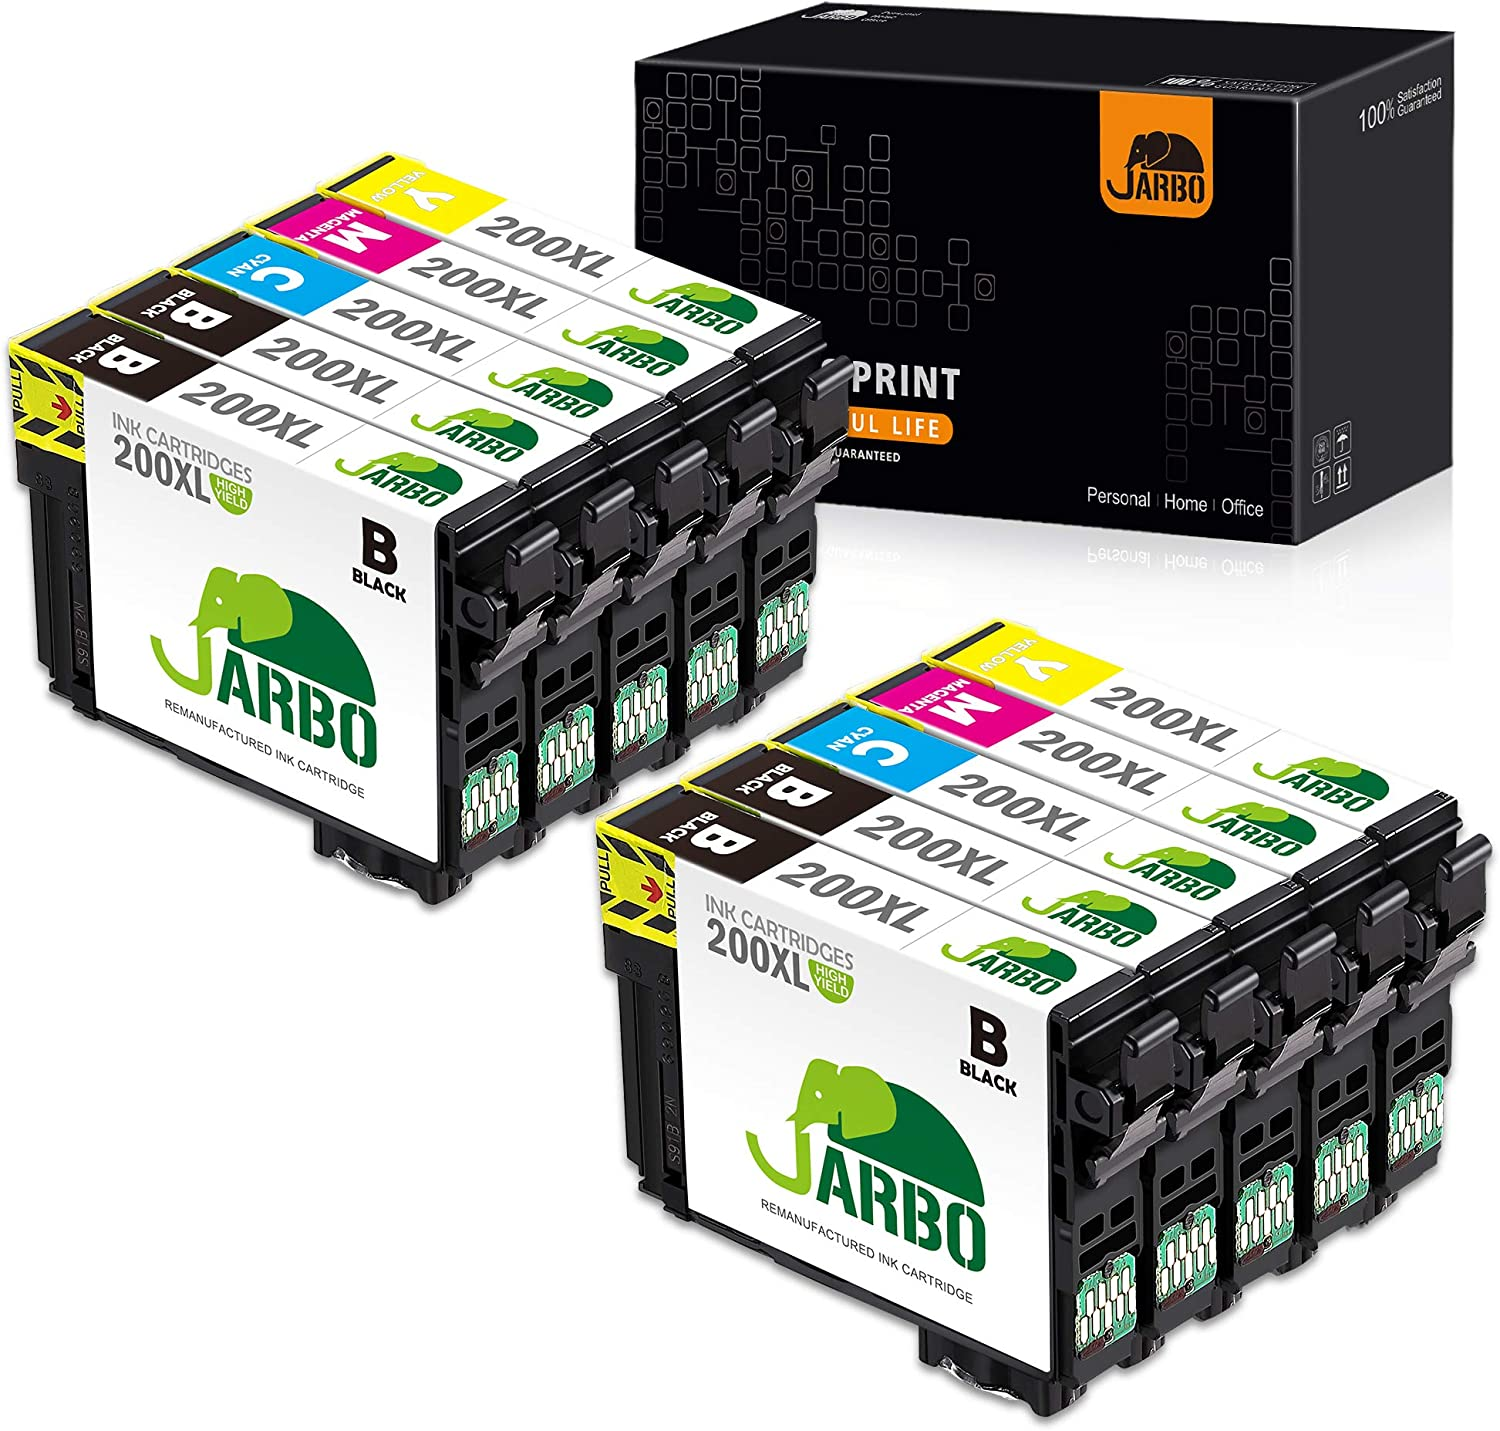 JARBO Remanufactured Ink Cartridge Replacement for Epson 200XL 200 XL T200XL to use with XP-200 XP-300 XP-310 XP-400 WF-2520 WF-2530 WF-2540 Printer ...